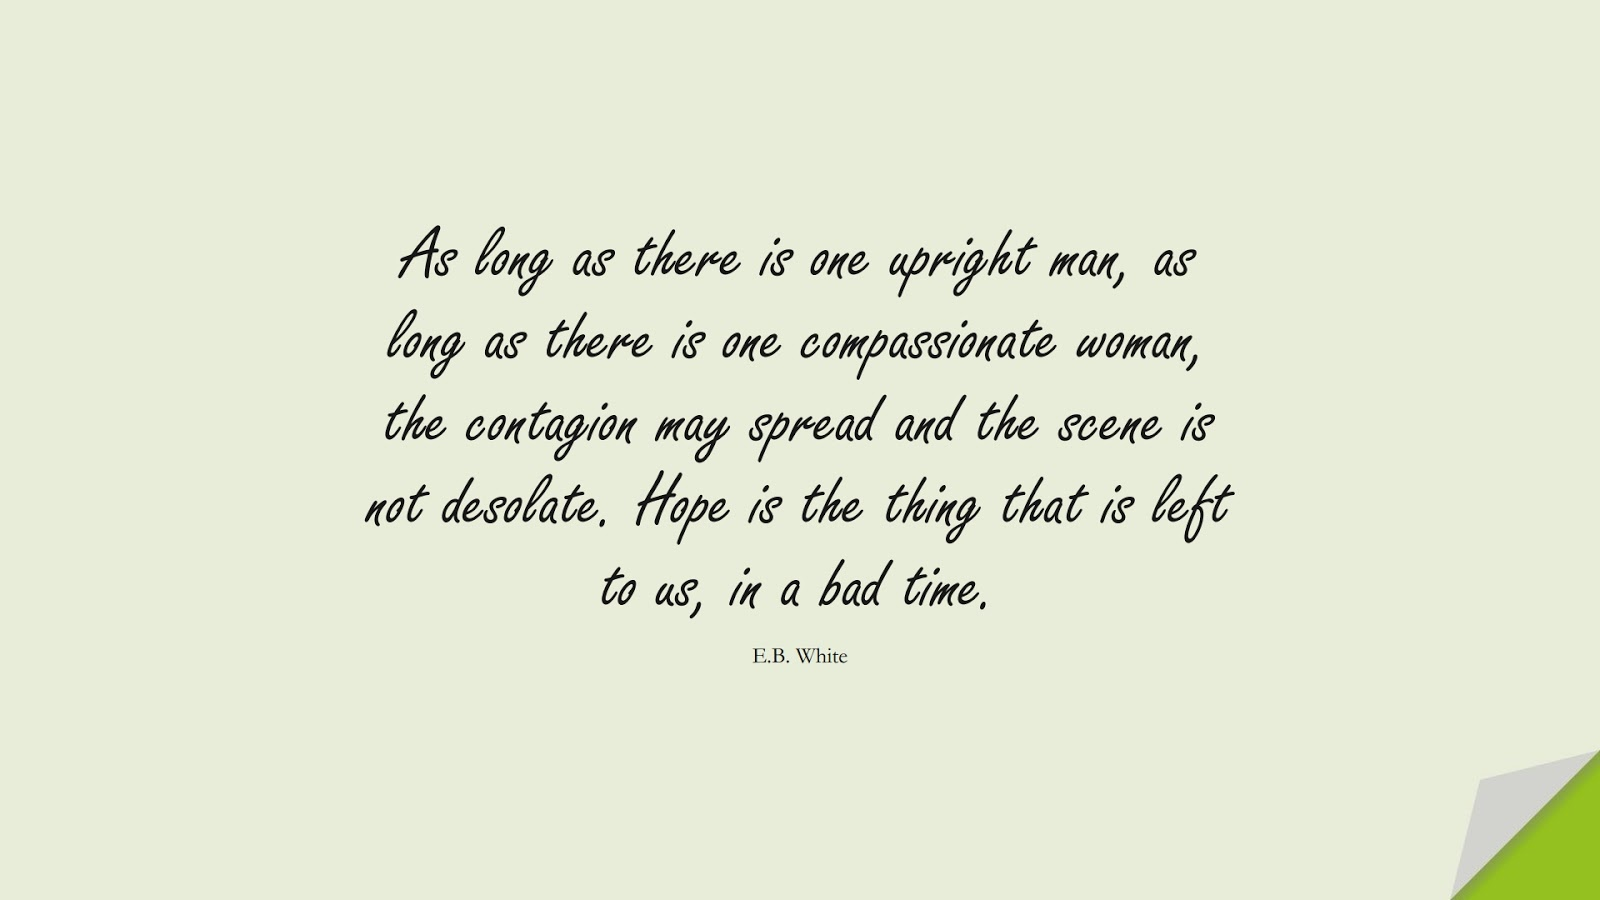 As long as there is one upright man, as long as there is one compassionate woman, the contagion may spread and the scene is not desolate. Hope is the thing that is left to us, in a bad time. (E.B. White);  #HopeQuotes